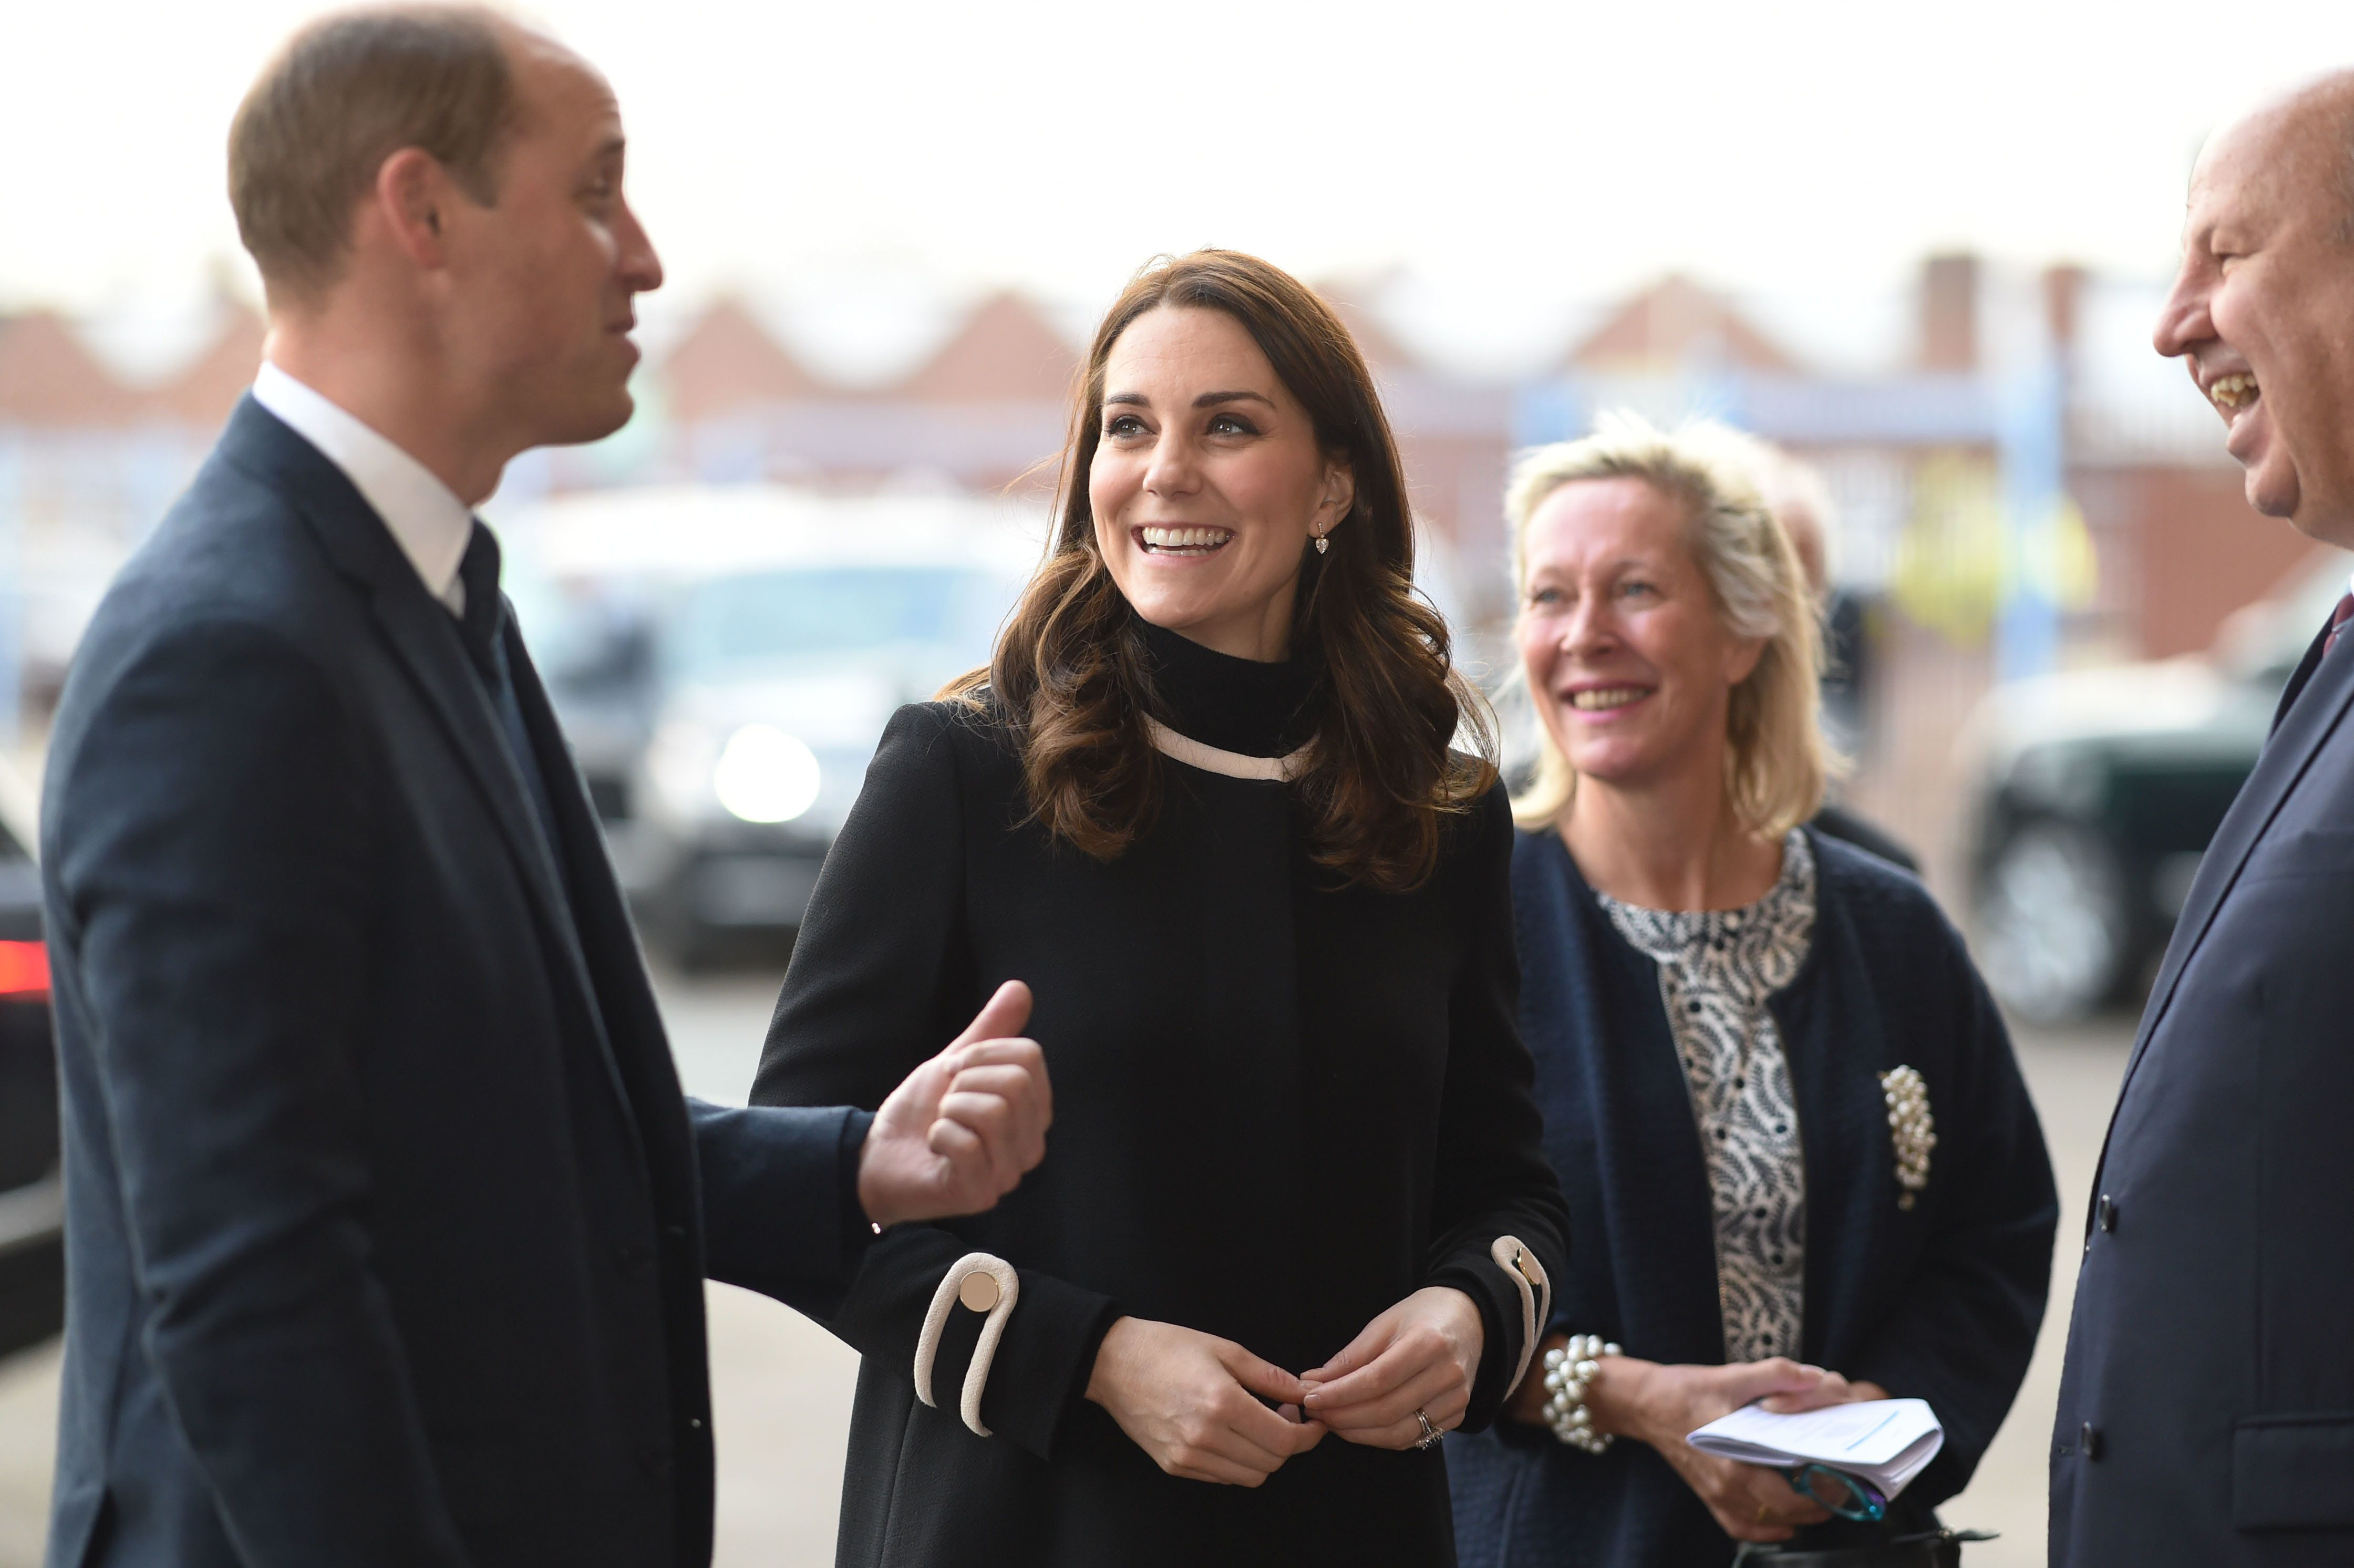 Britain's Prince William, Duke of Cambridge and Britain's Catherine, Duchess of Cambridge gesture on their arrival at Aston Villa Football Club to see the work of the Coach Core programme, in Birmingham on November 22, 2017.  / AFP PHOTO / POOL / Geoff PUGH        (Photo credit should read GEOFF PUGH/AFP/Getty Images)